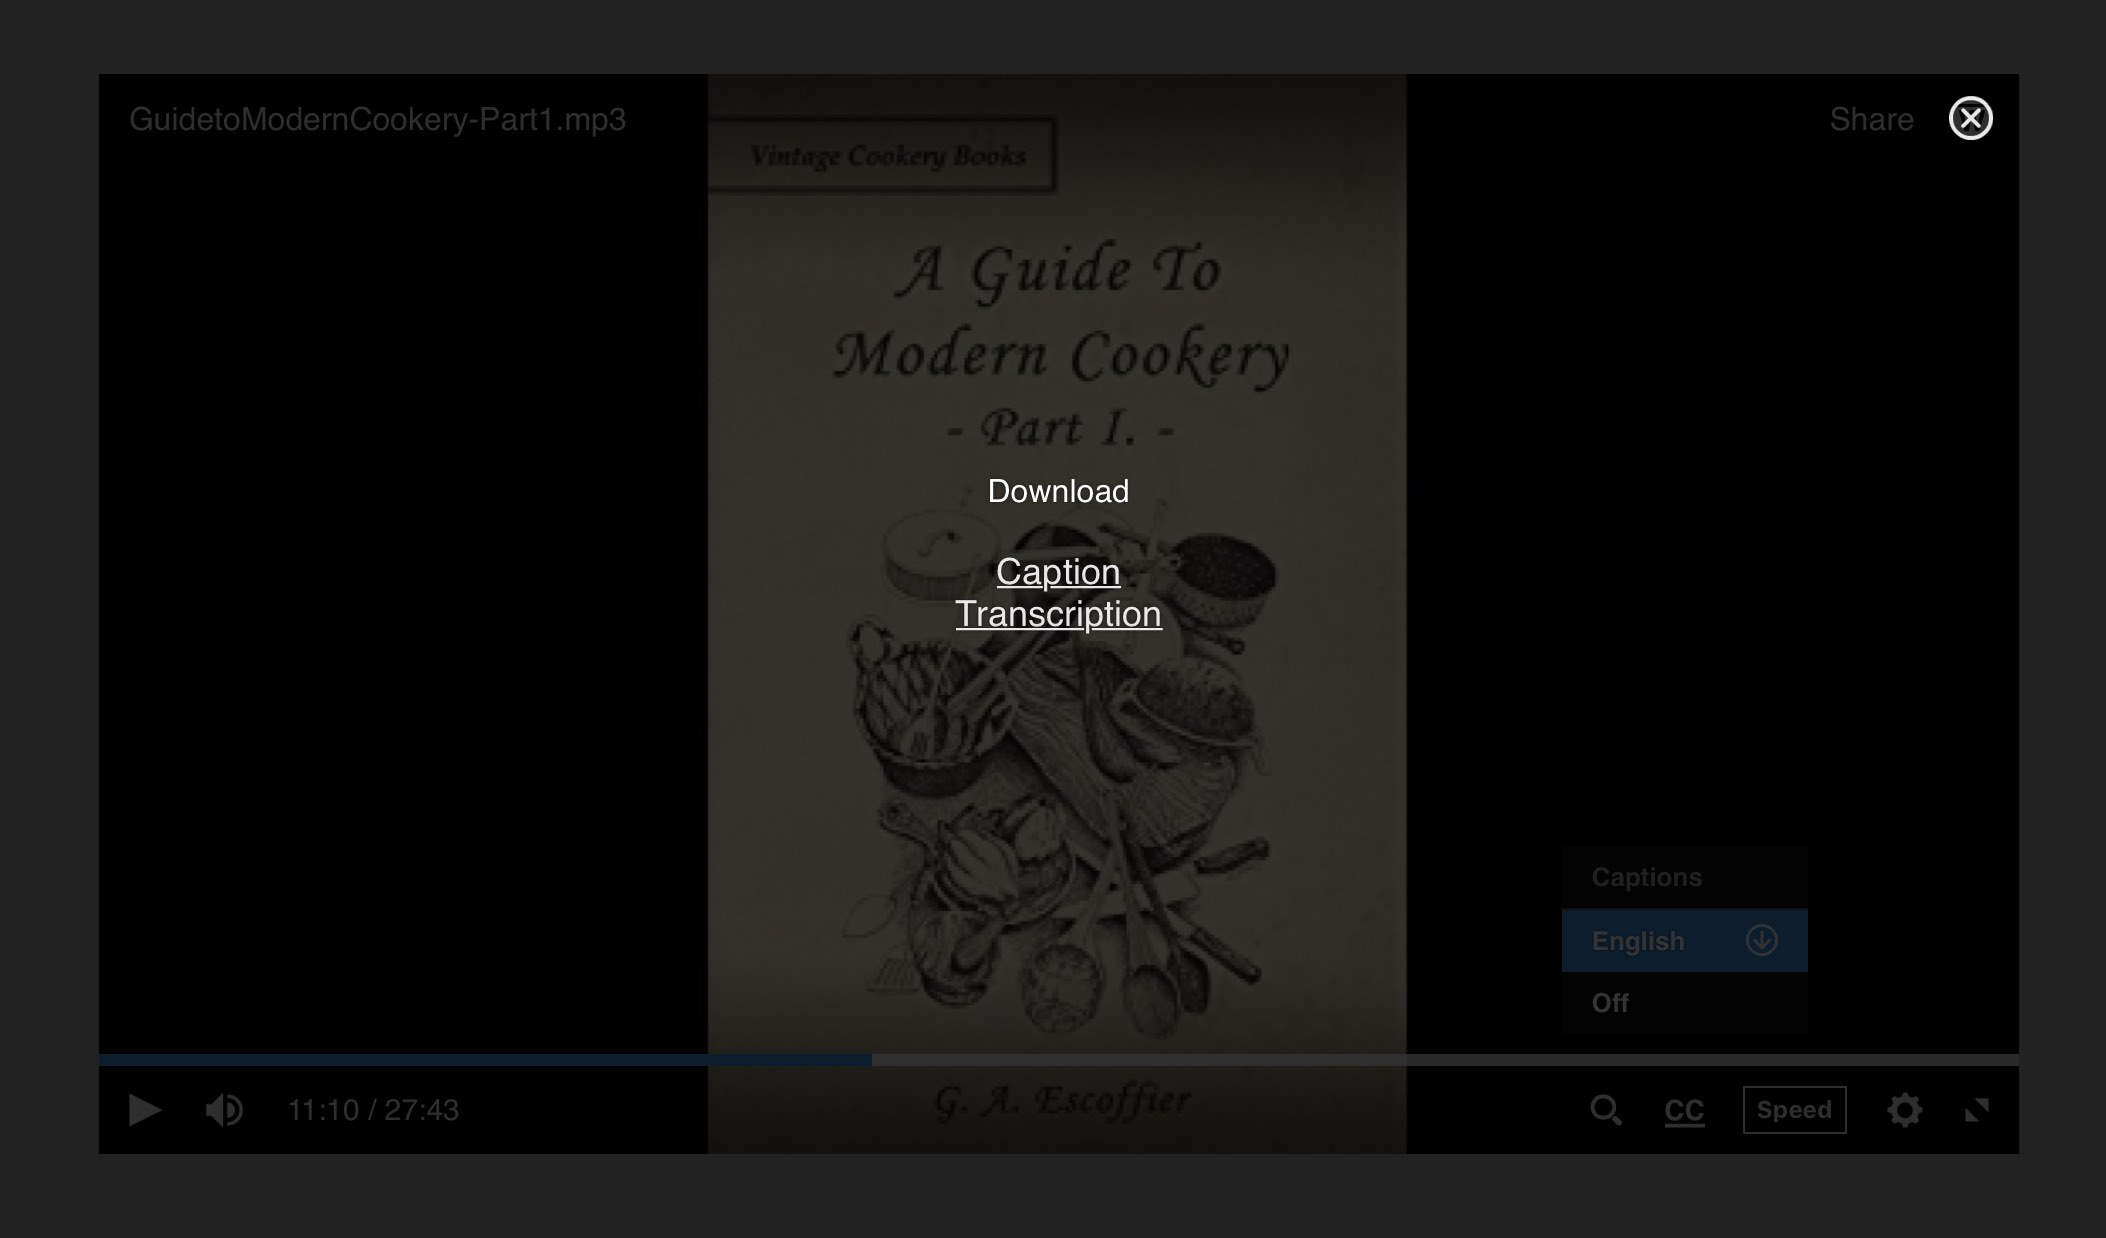 Audio player overlay displaying caption and transcript download links